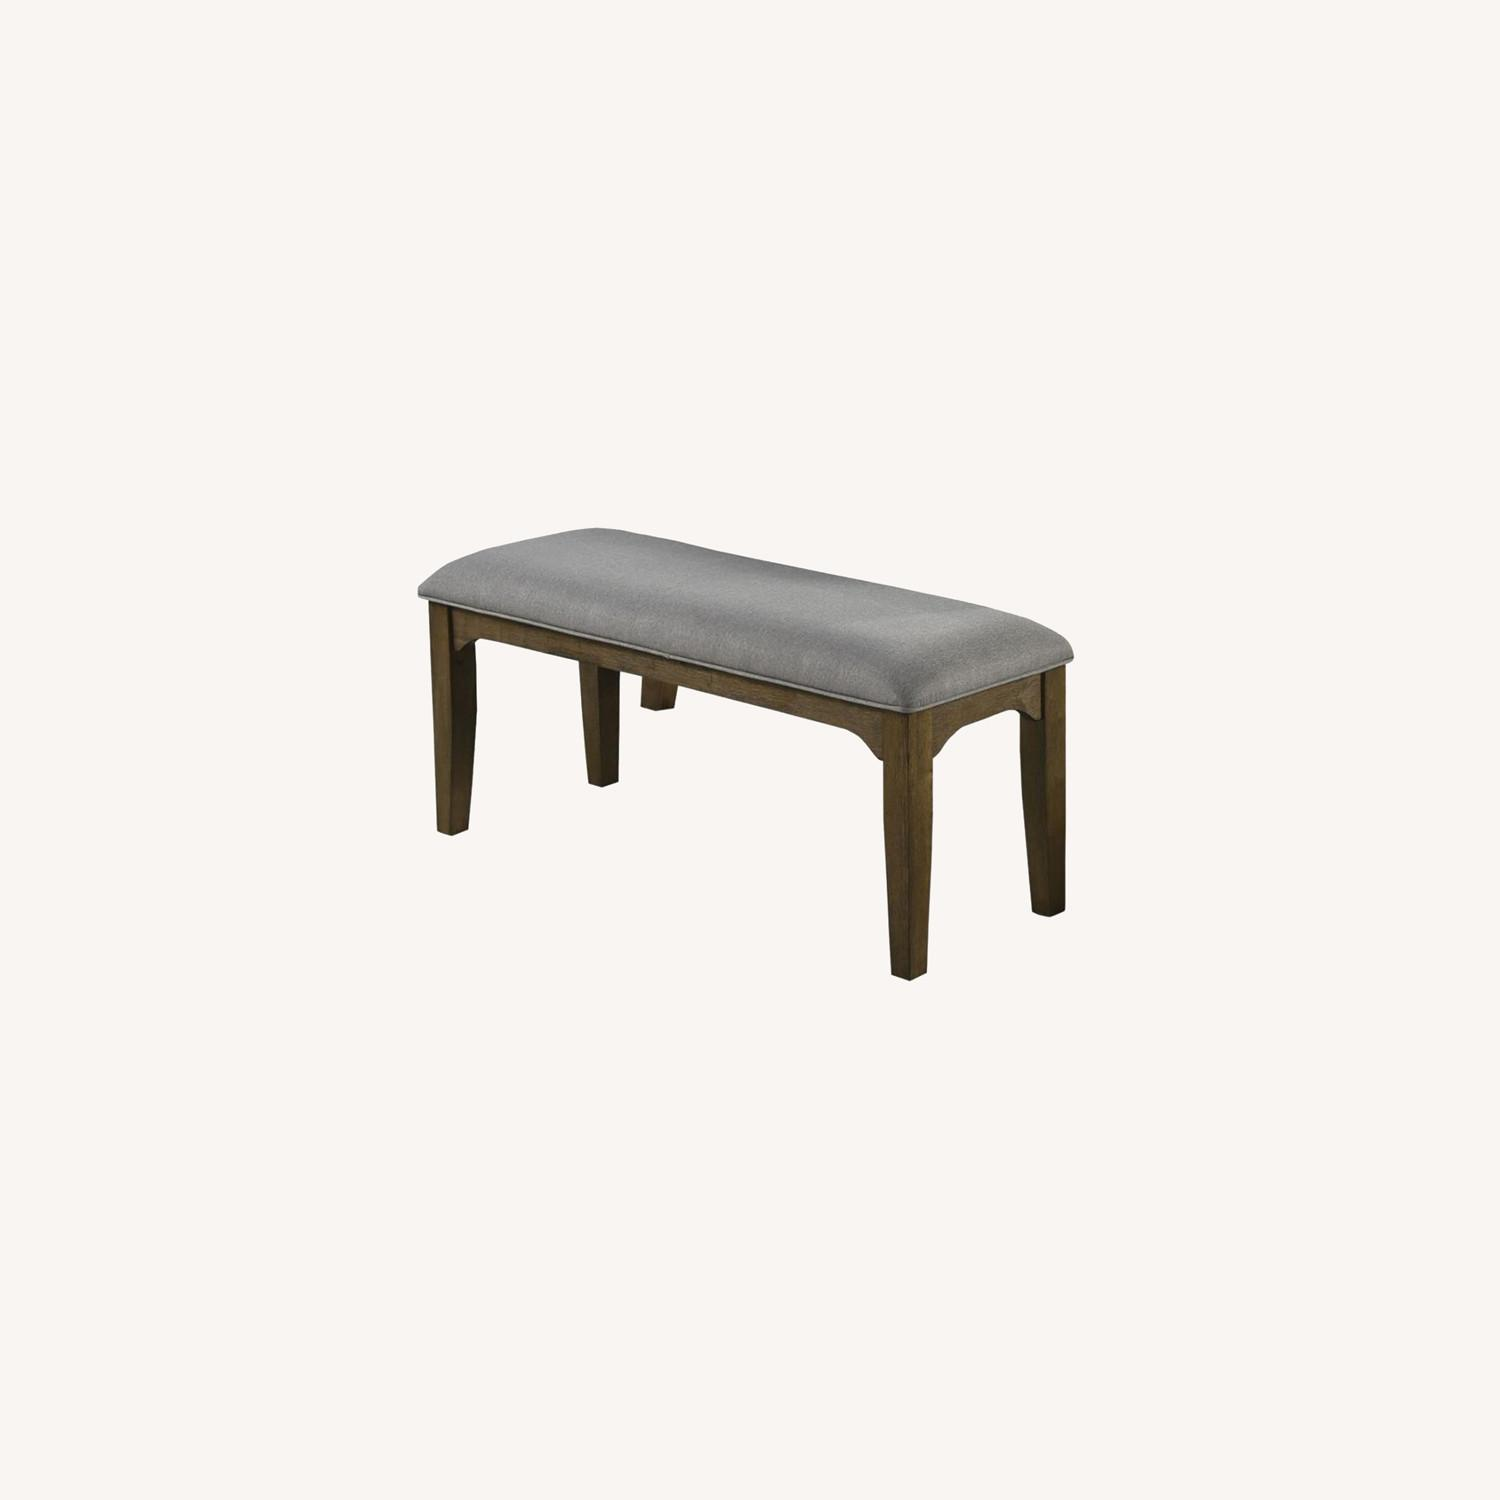 Bench In Asian Hardwood & Grey Fabric Upholstery - image-4